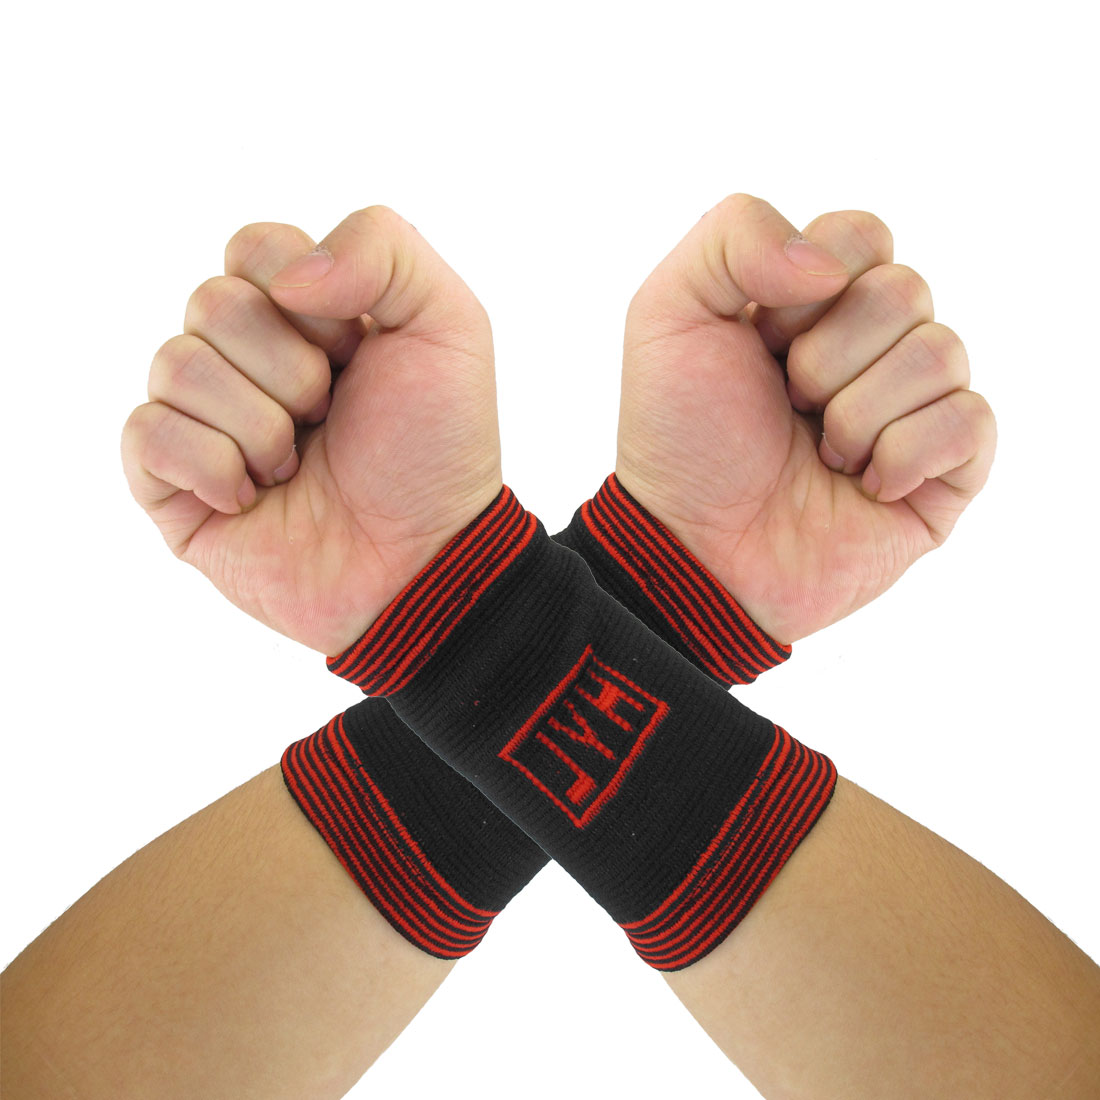 Pair Protective Black Red Pinstripe Stretchy Wrist Support Brace